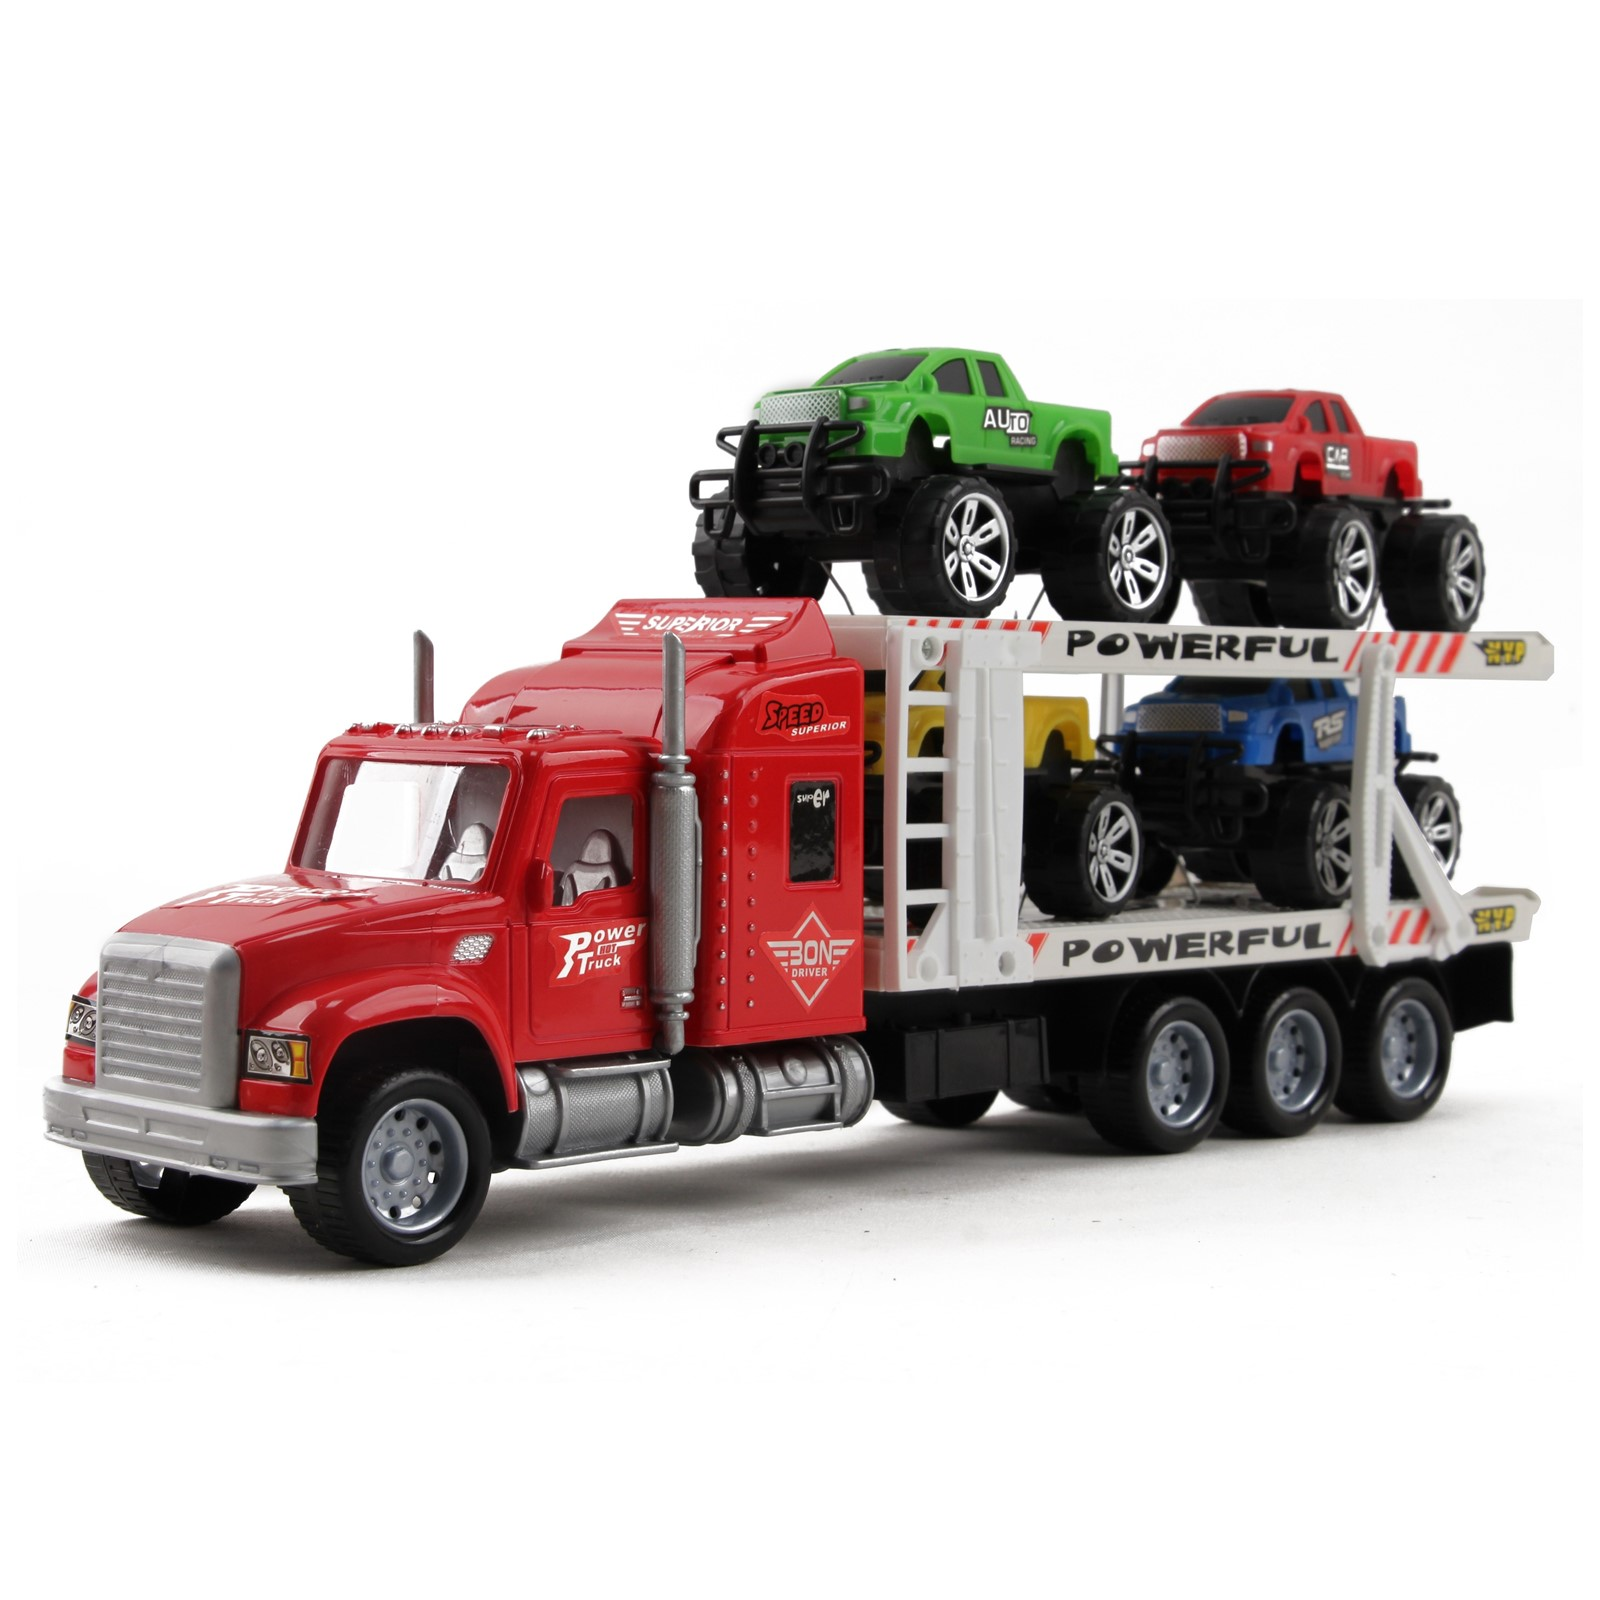 "Friction Powered Toy Semi Truck Trailer 14.5"" With Four Lifted Pickup Cars Kids Push And Go Big Rig Carrier 1:32 Scale Auto Transporter Semi-Truck Play Vehicle Great Gift For Children Boys Girl"